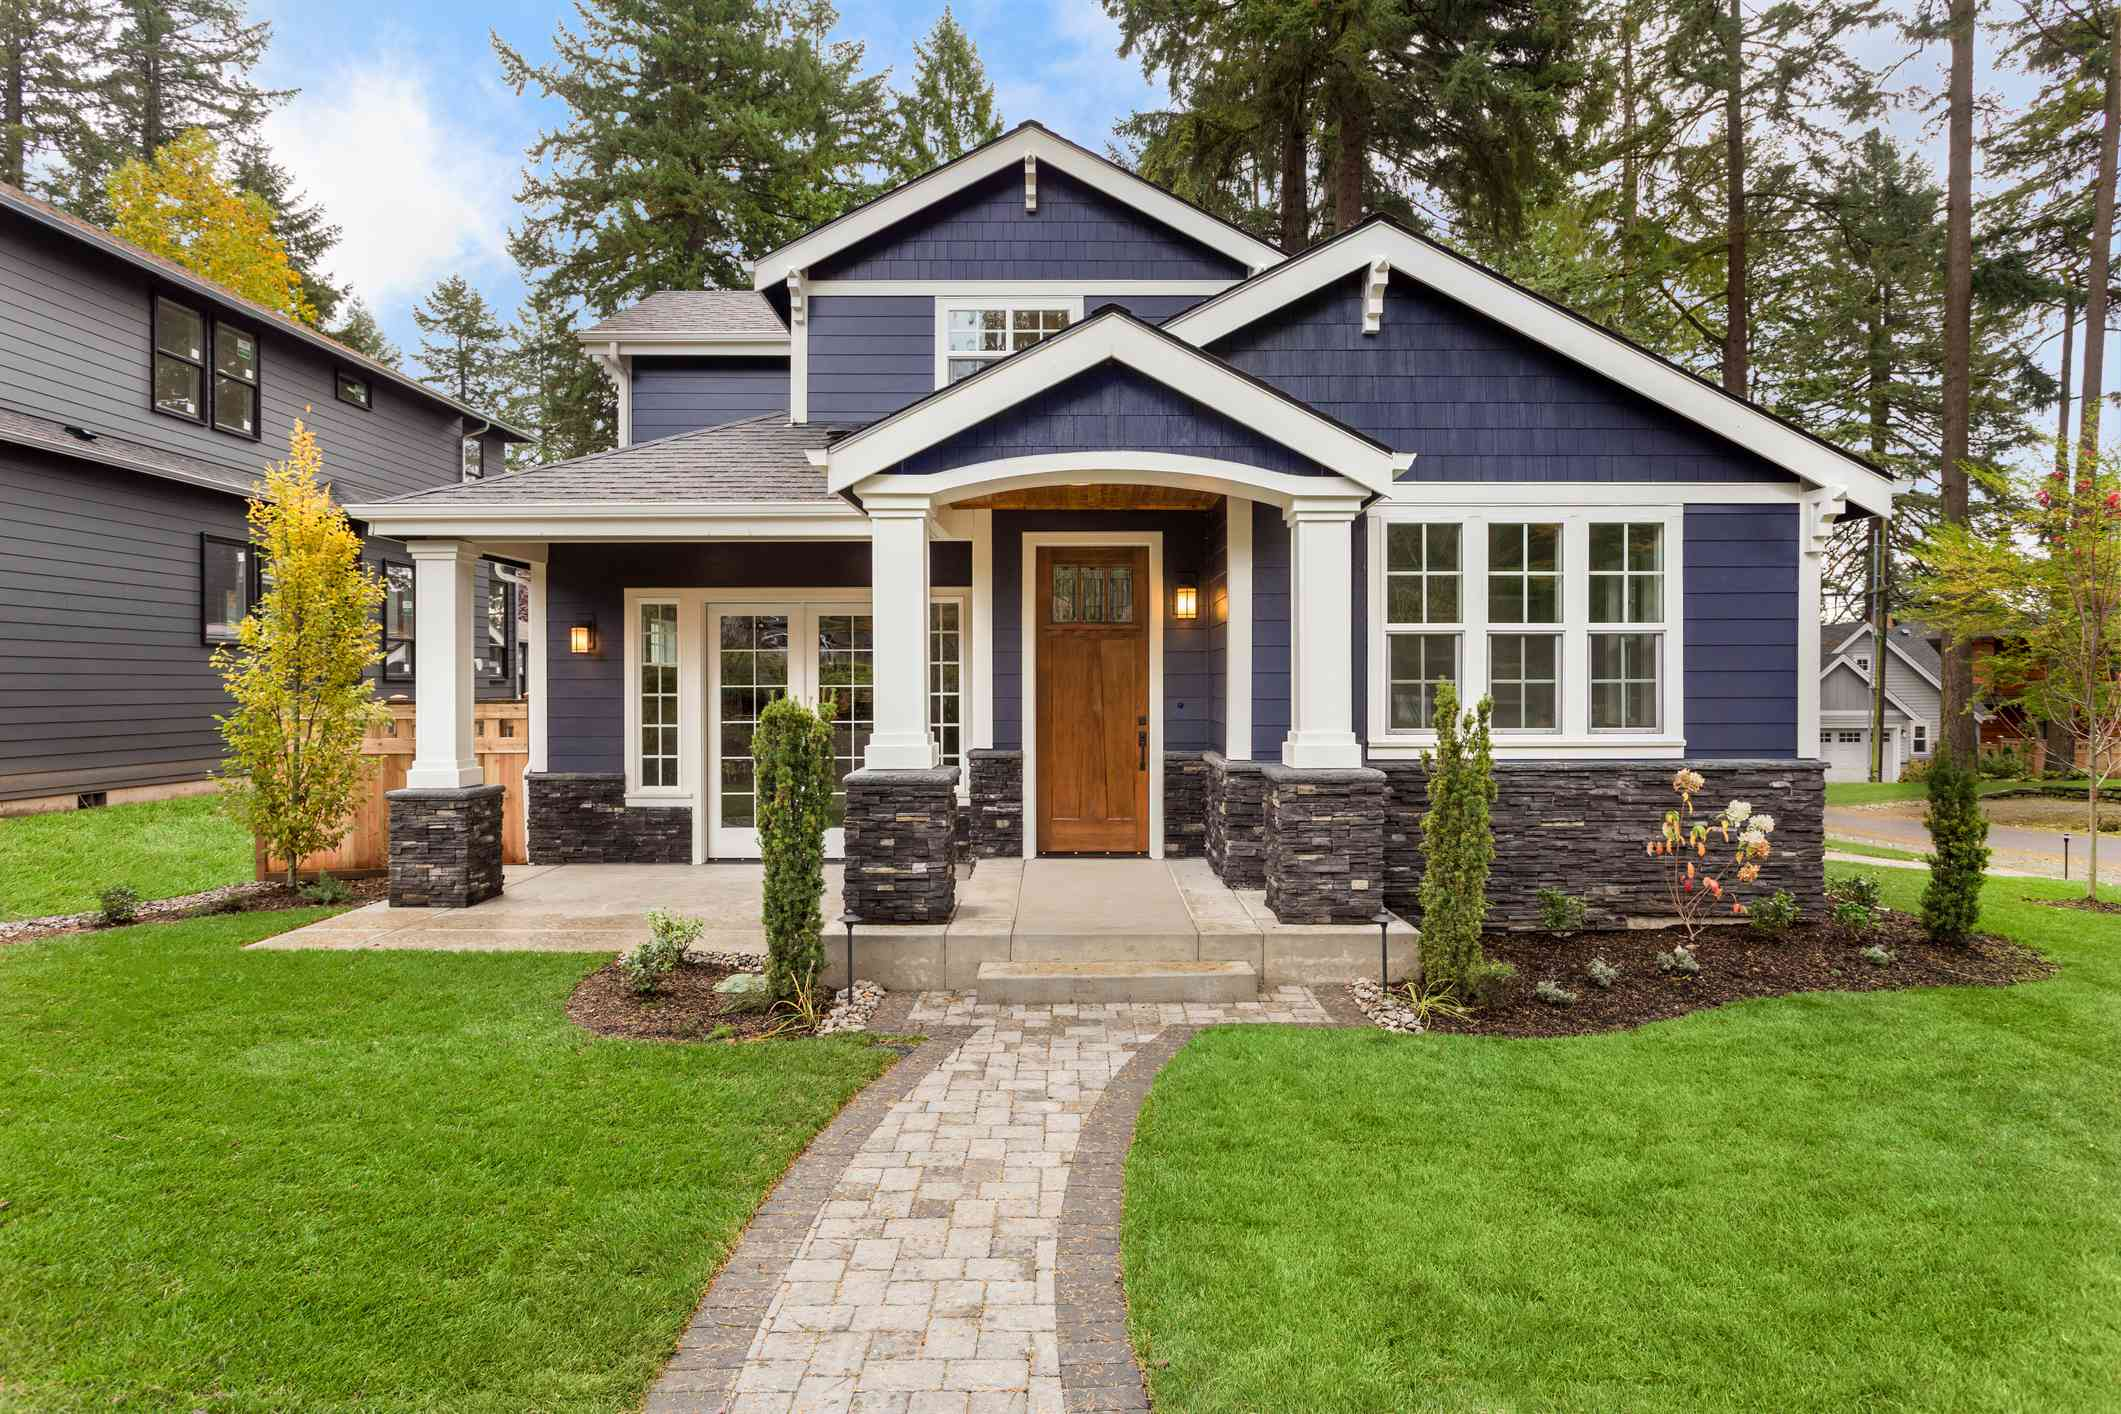 Beautiful Luxury Home Exterior with Green Grass and Landscaped yard